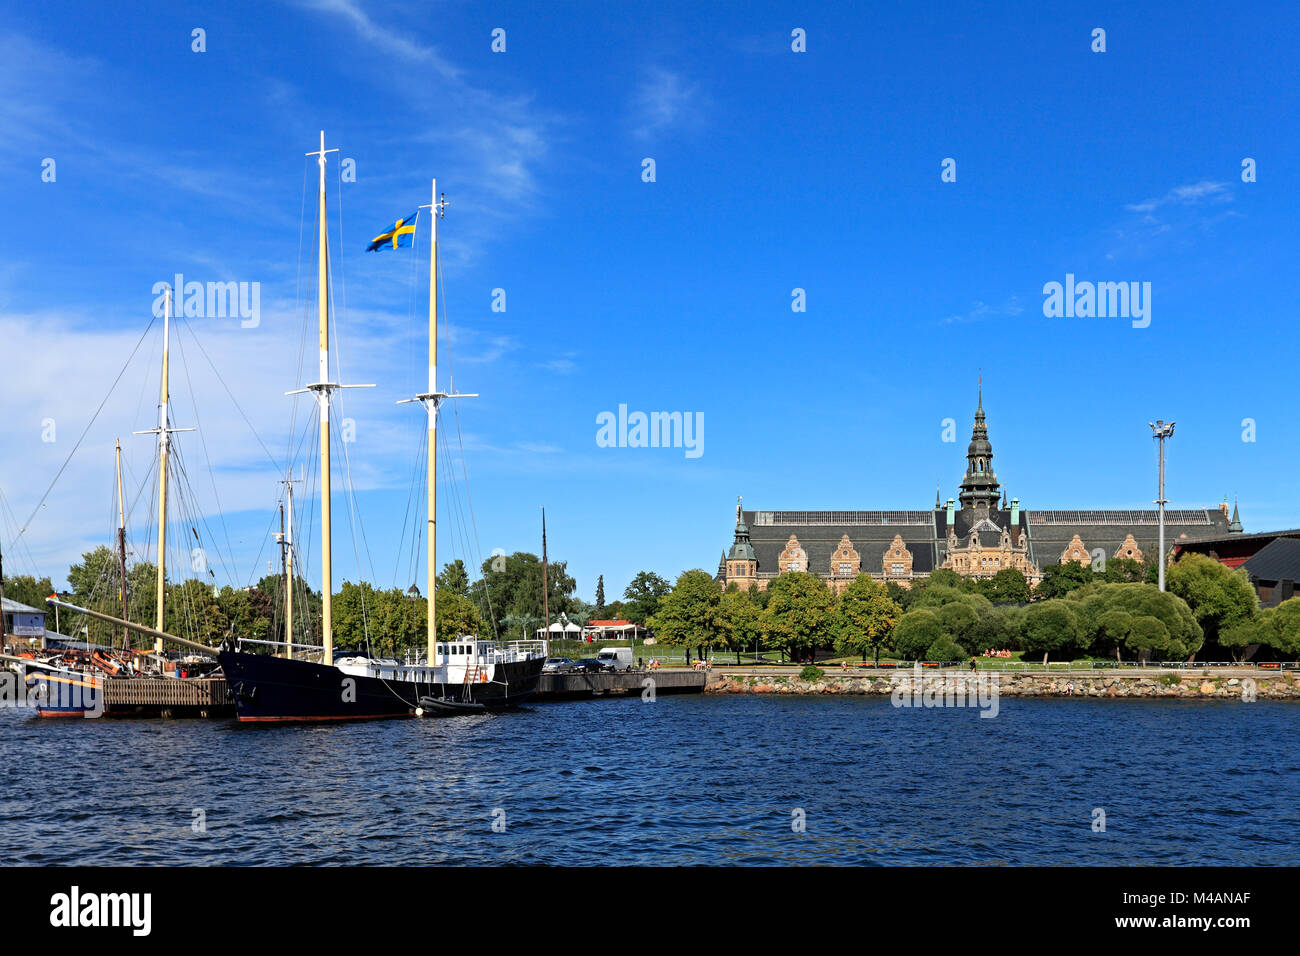 Stockholm / Sweden - 2013/08/01: Djurgarden Island - Nordic Museum - historical and contemporary museum of Swedish - Stock Image